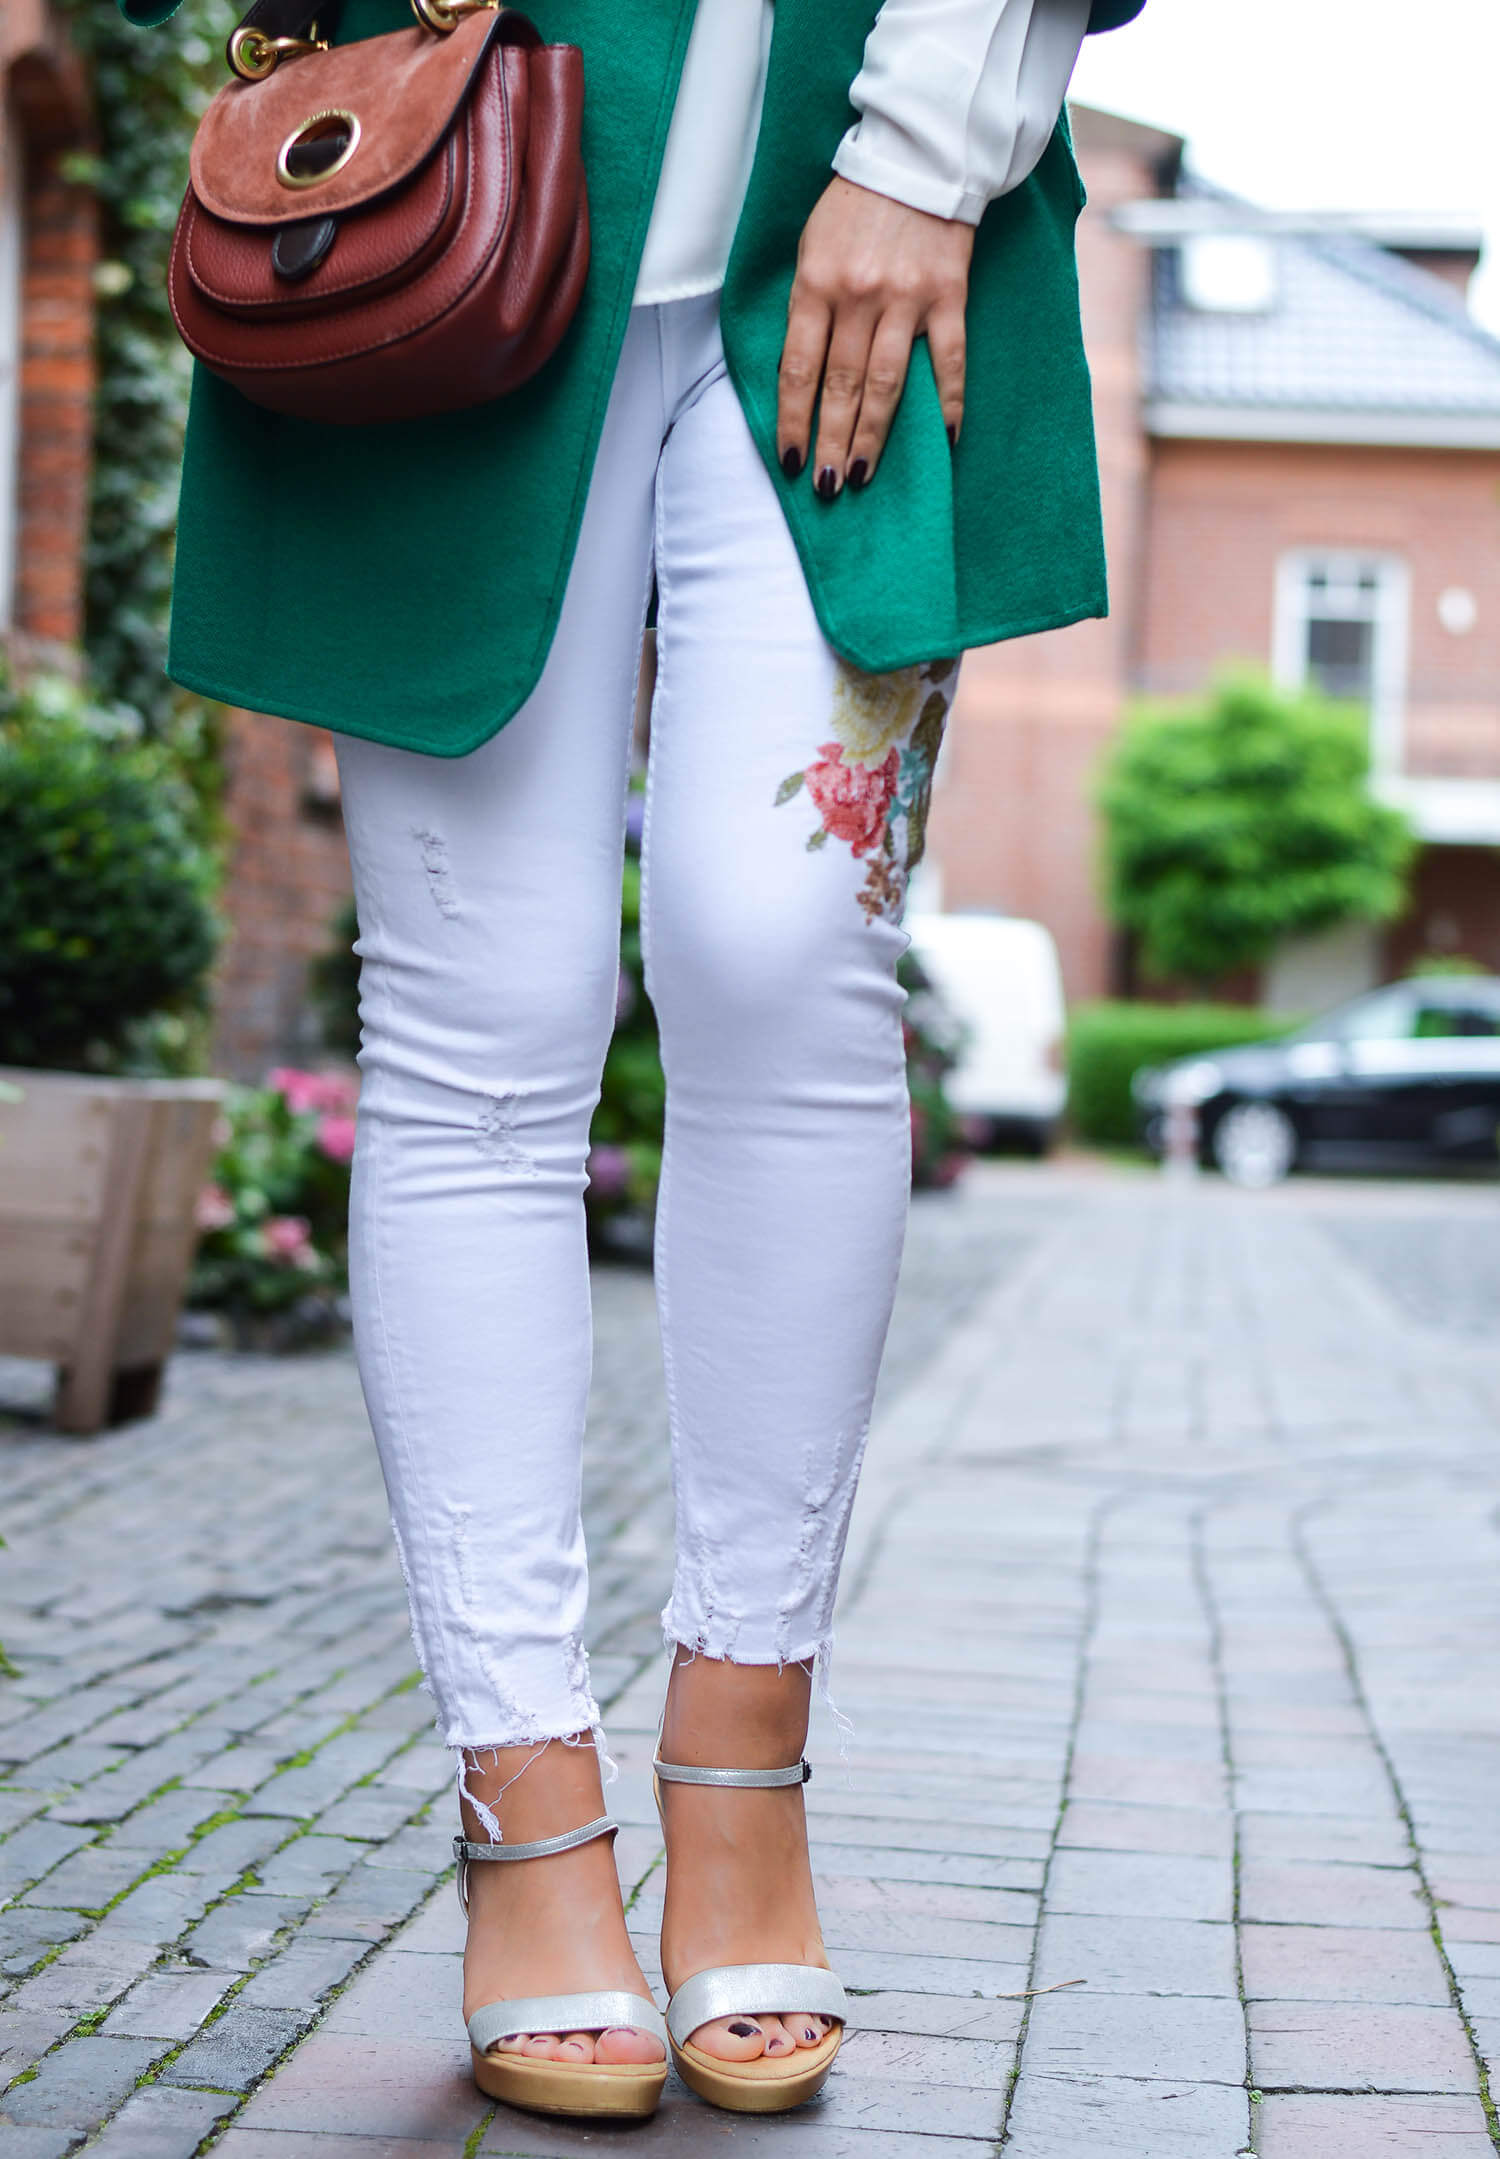 kationette-fashionblog-nrw-summer-Outfit-Green-Knit-White-Denim